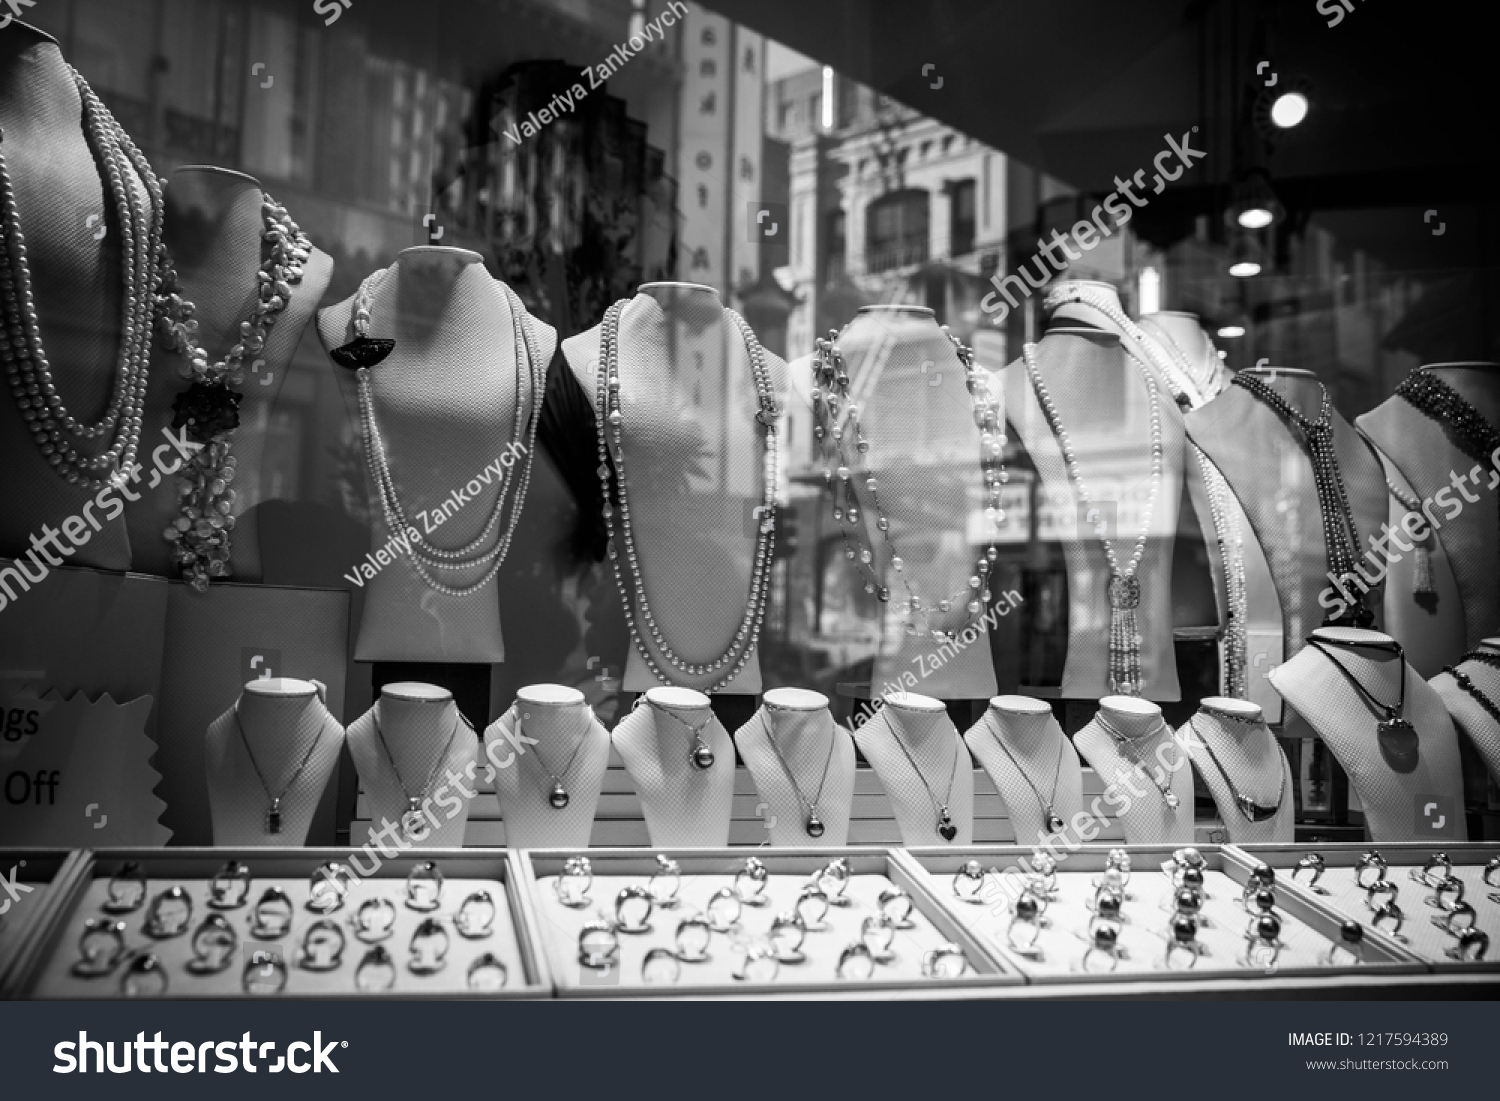 0a76a5eac3 Black and White Picture of a Display of pearl necklaces and rings in a  jewelry shop